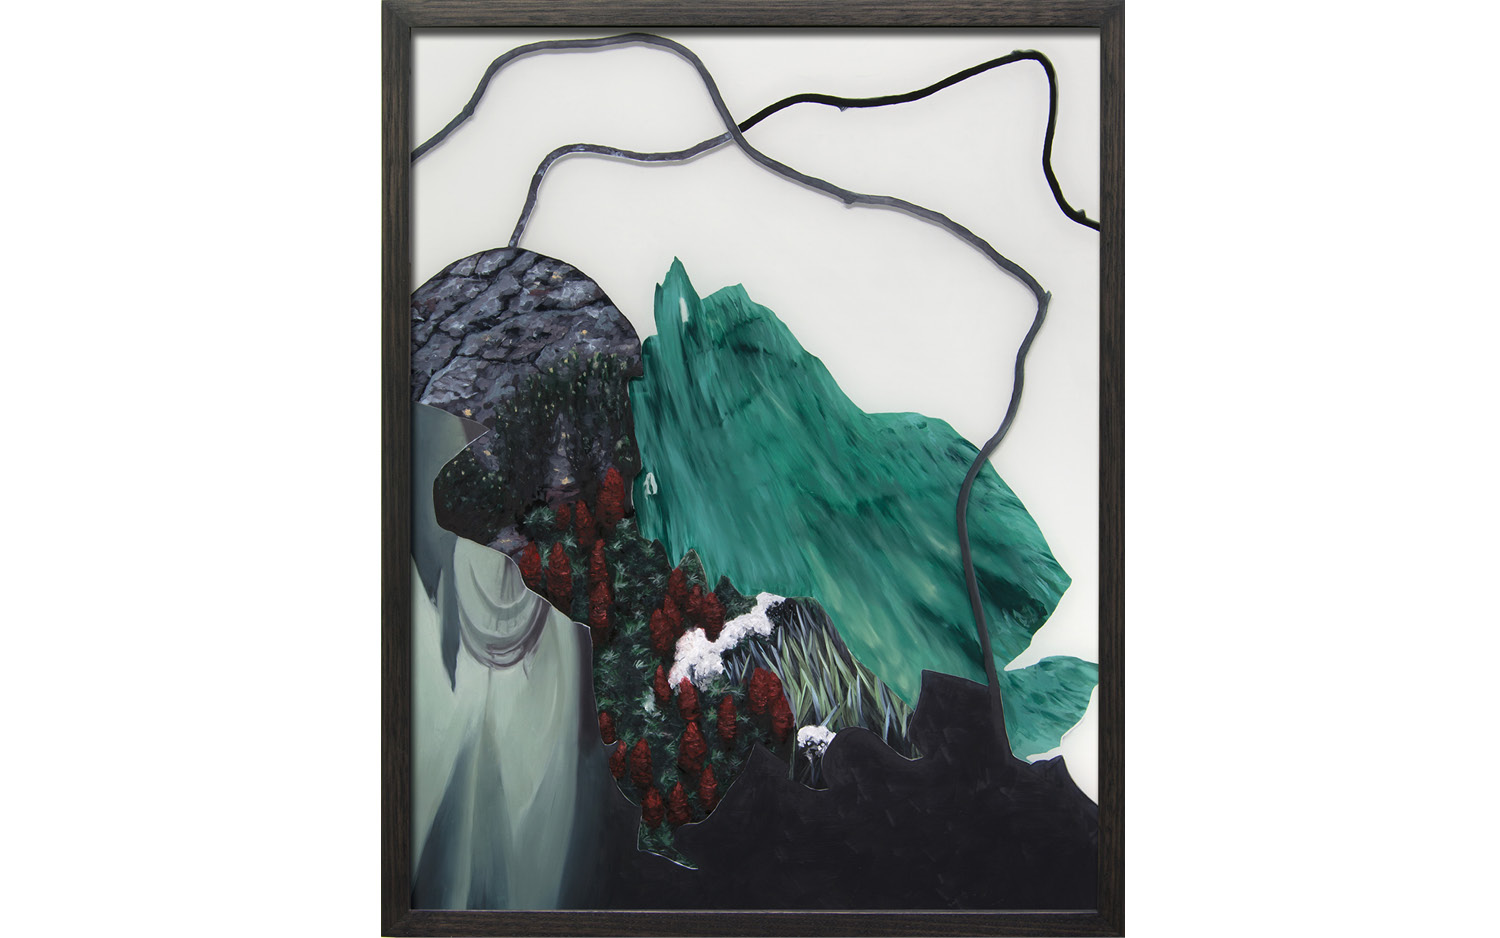 ALICE WORMALD  is a finalist in the Bayside Acquisitive Art Prize with  Wavered  2016, oil on front and back of glass, 51 × 40 cm. Bayside Arts Centre, 7 May – 26 June 2017